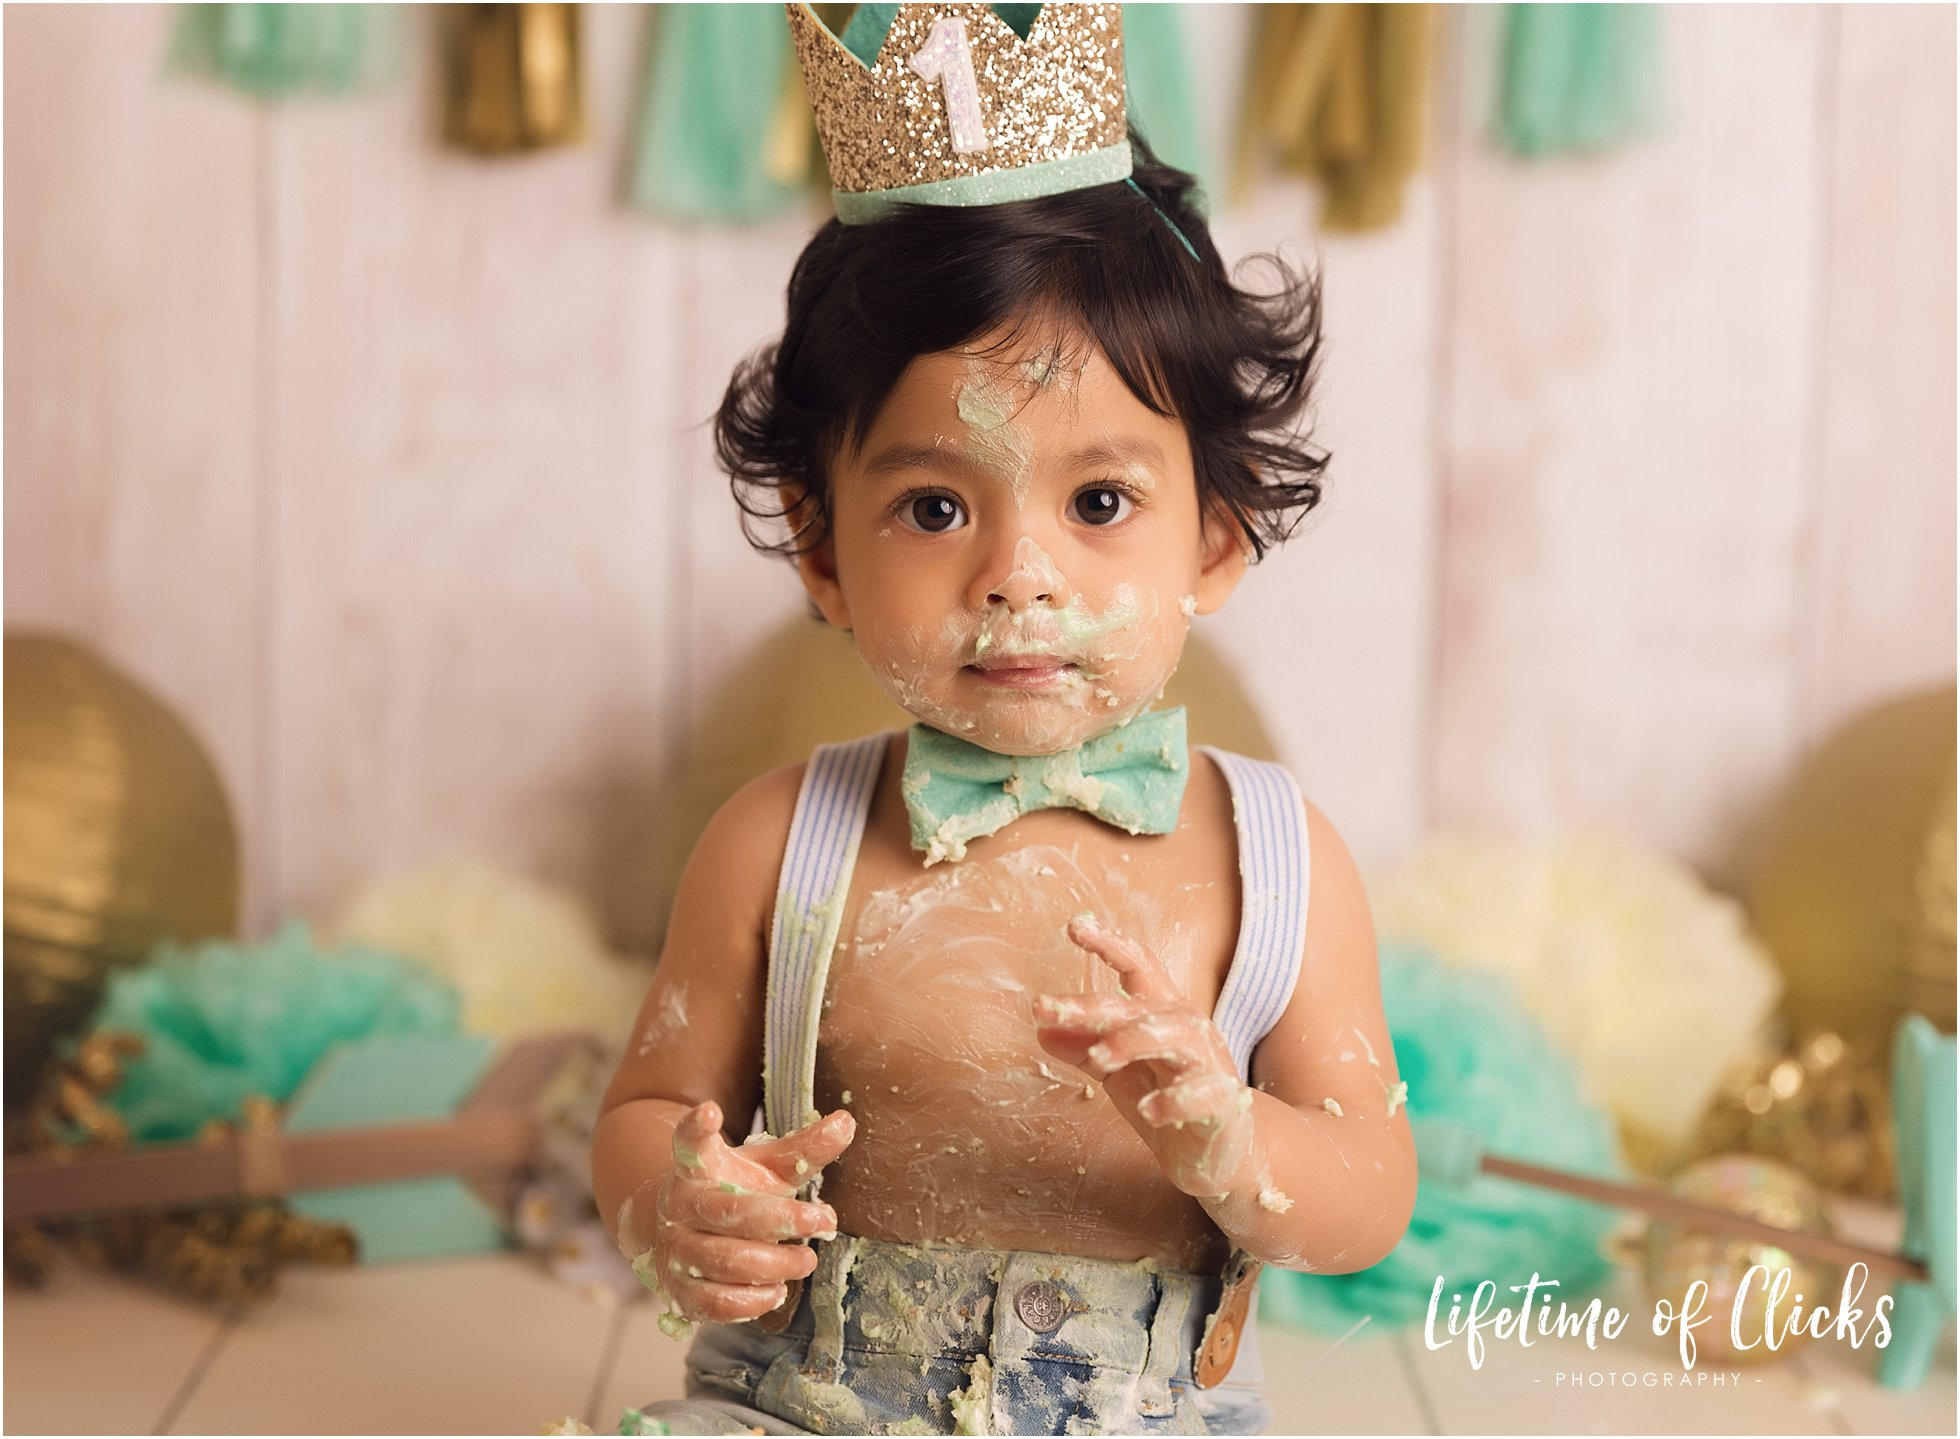 One year old boy at his cake smash session